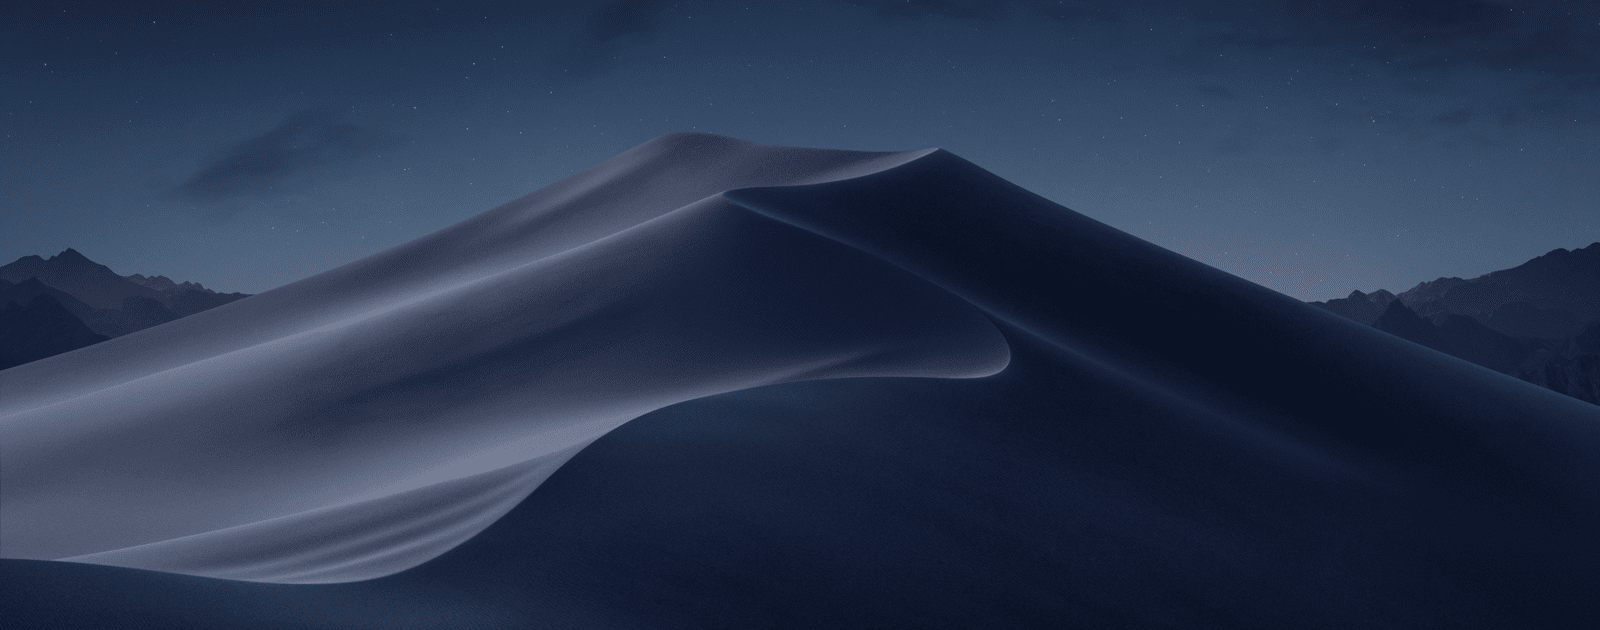 Image of macOS Mojave wallpaper, which has dark mode apps.